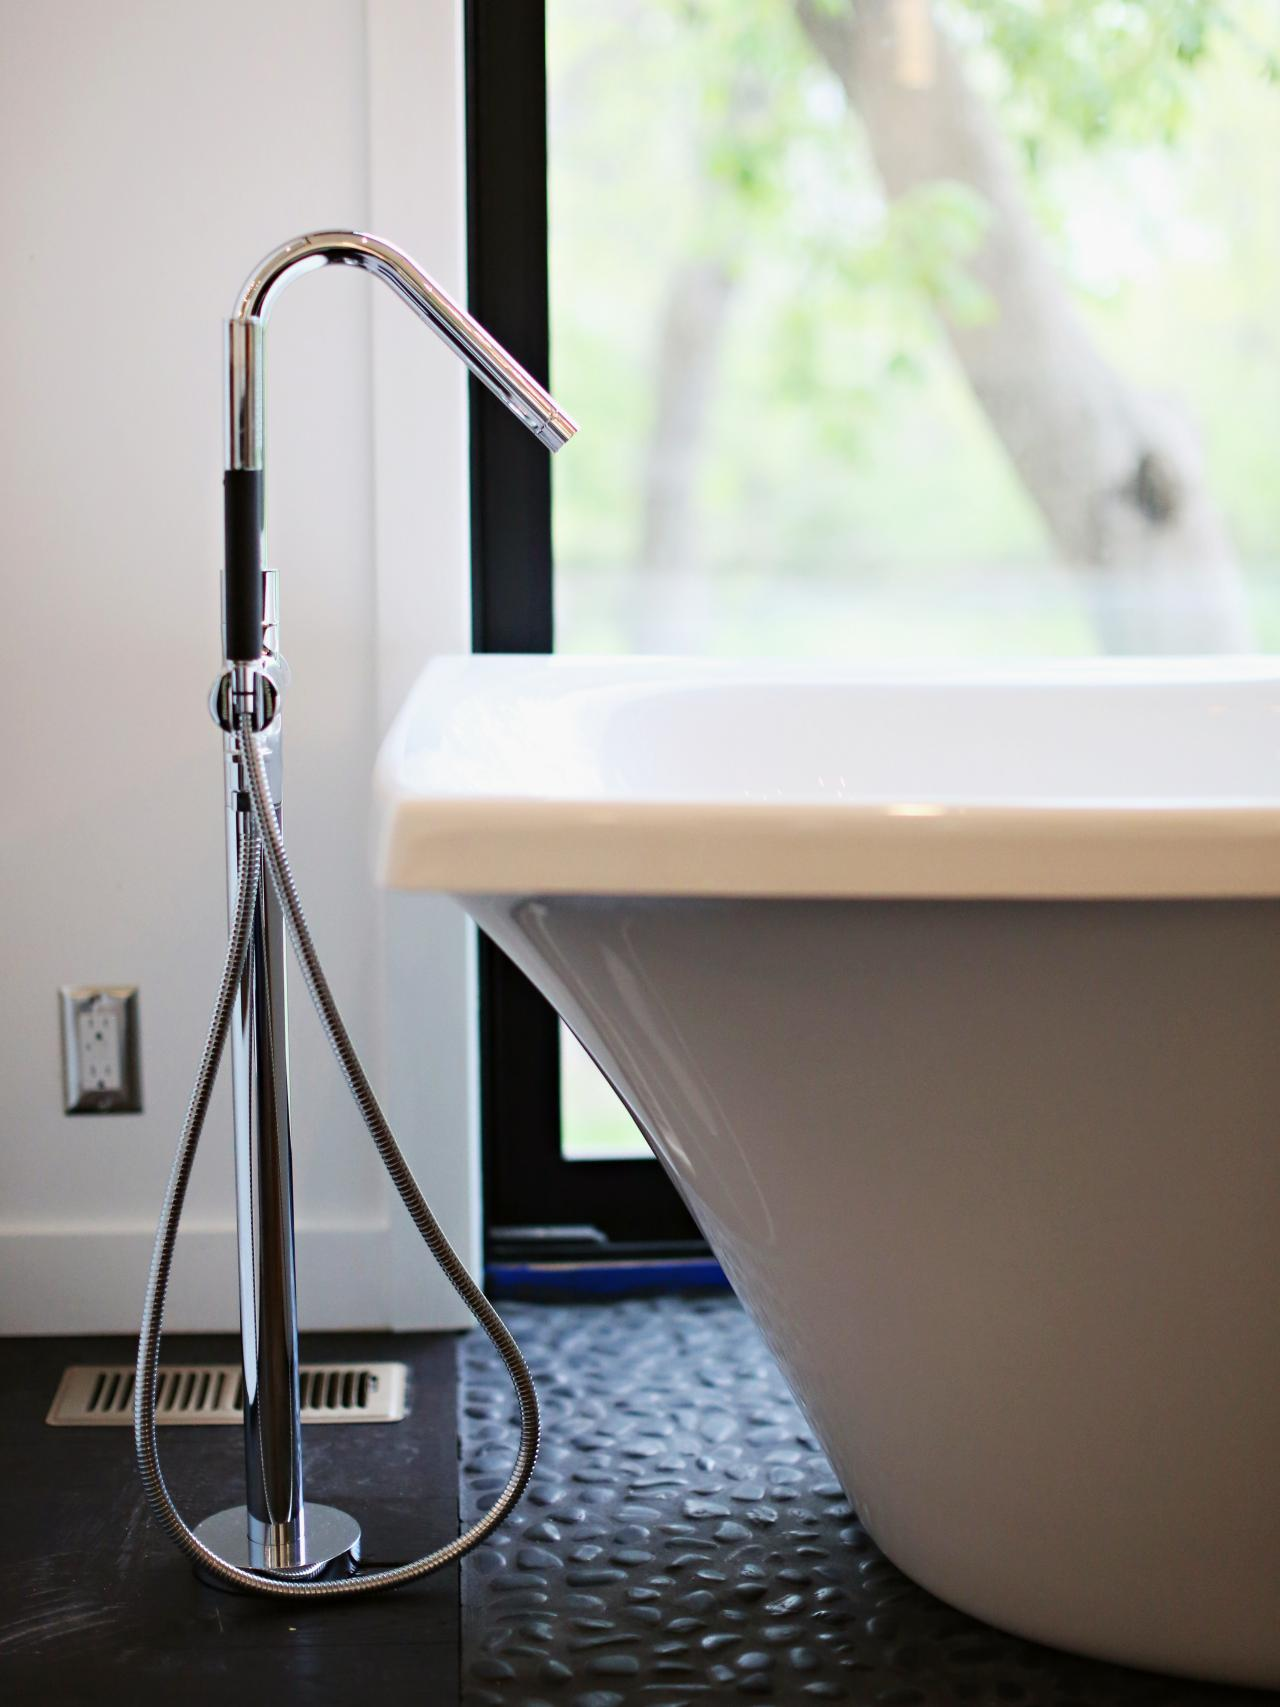 most comfortable freestanding tub. Material mindset  Unique Freestanding Tub Faucet Bathtub Buying Tips HGTV